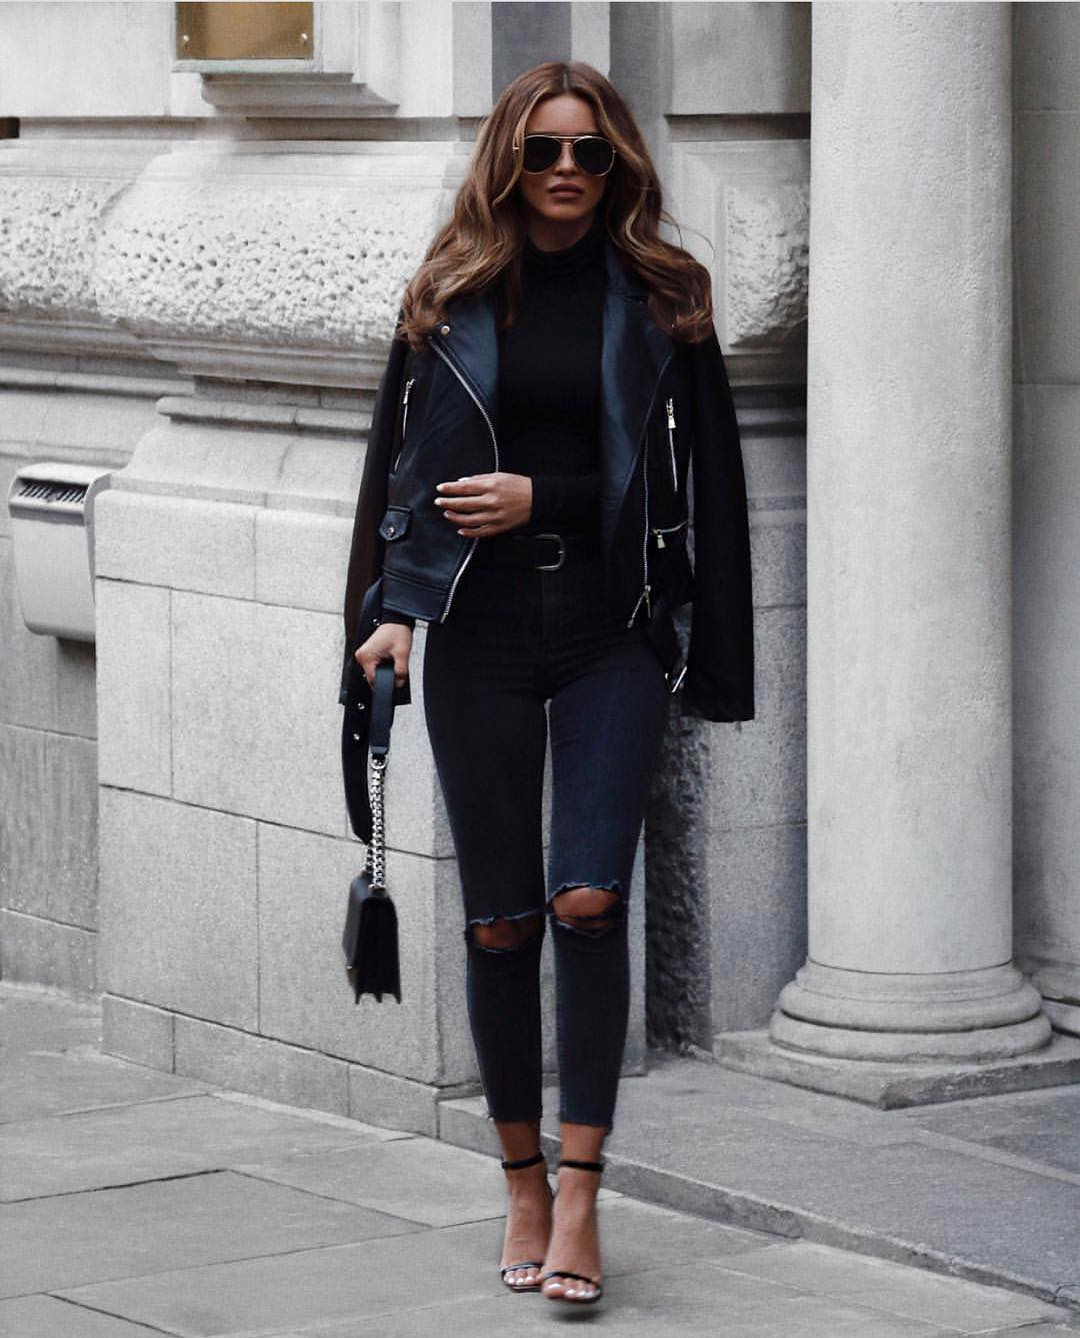 All Black Fall Outfit: Leather Jacket, Black Bodysuit And Skinny Jeans 2019